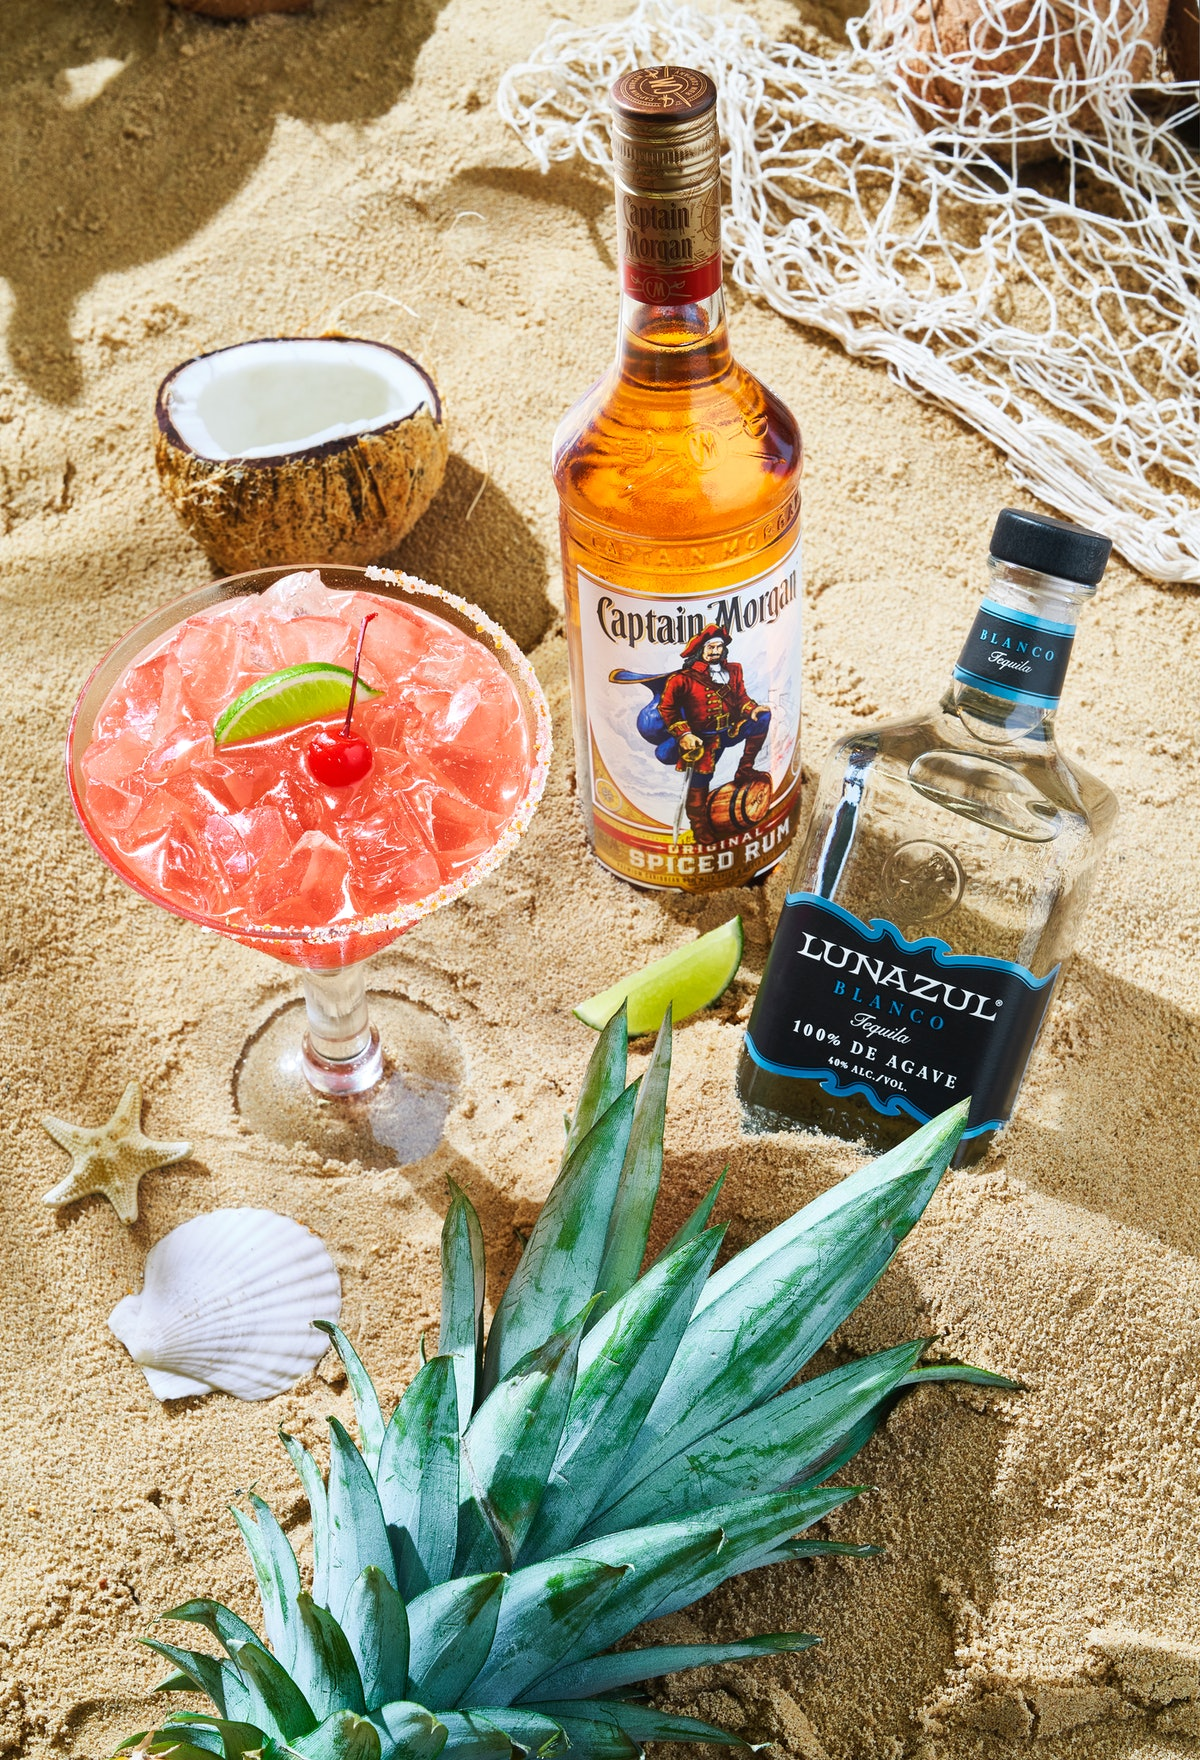 Chili's has a tropical marg of the month for July 2021 that combines rum and tequila.